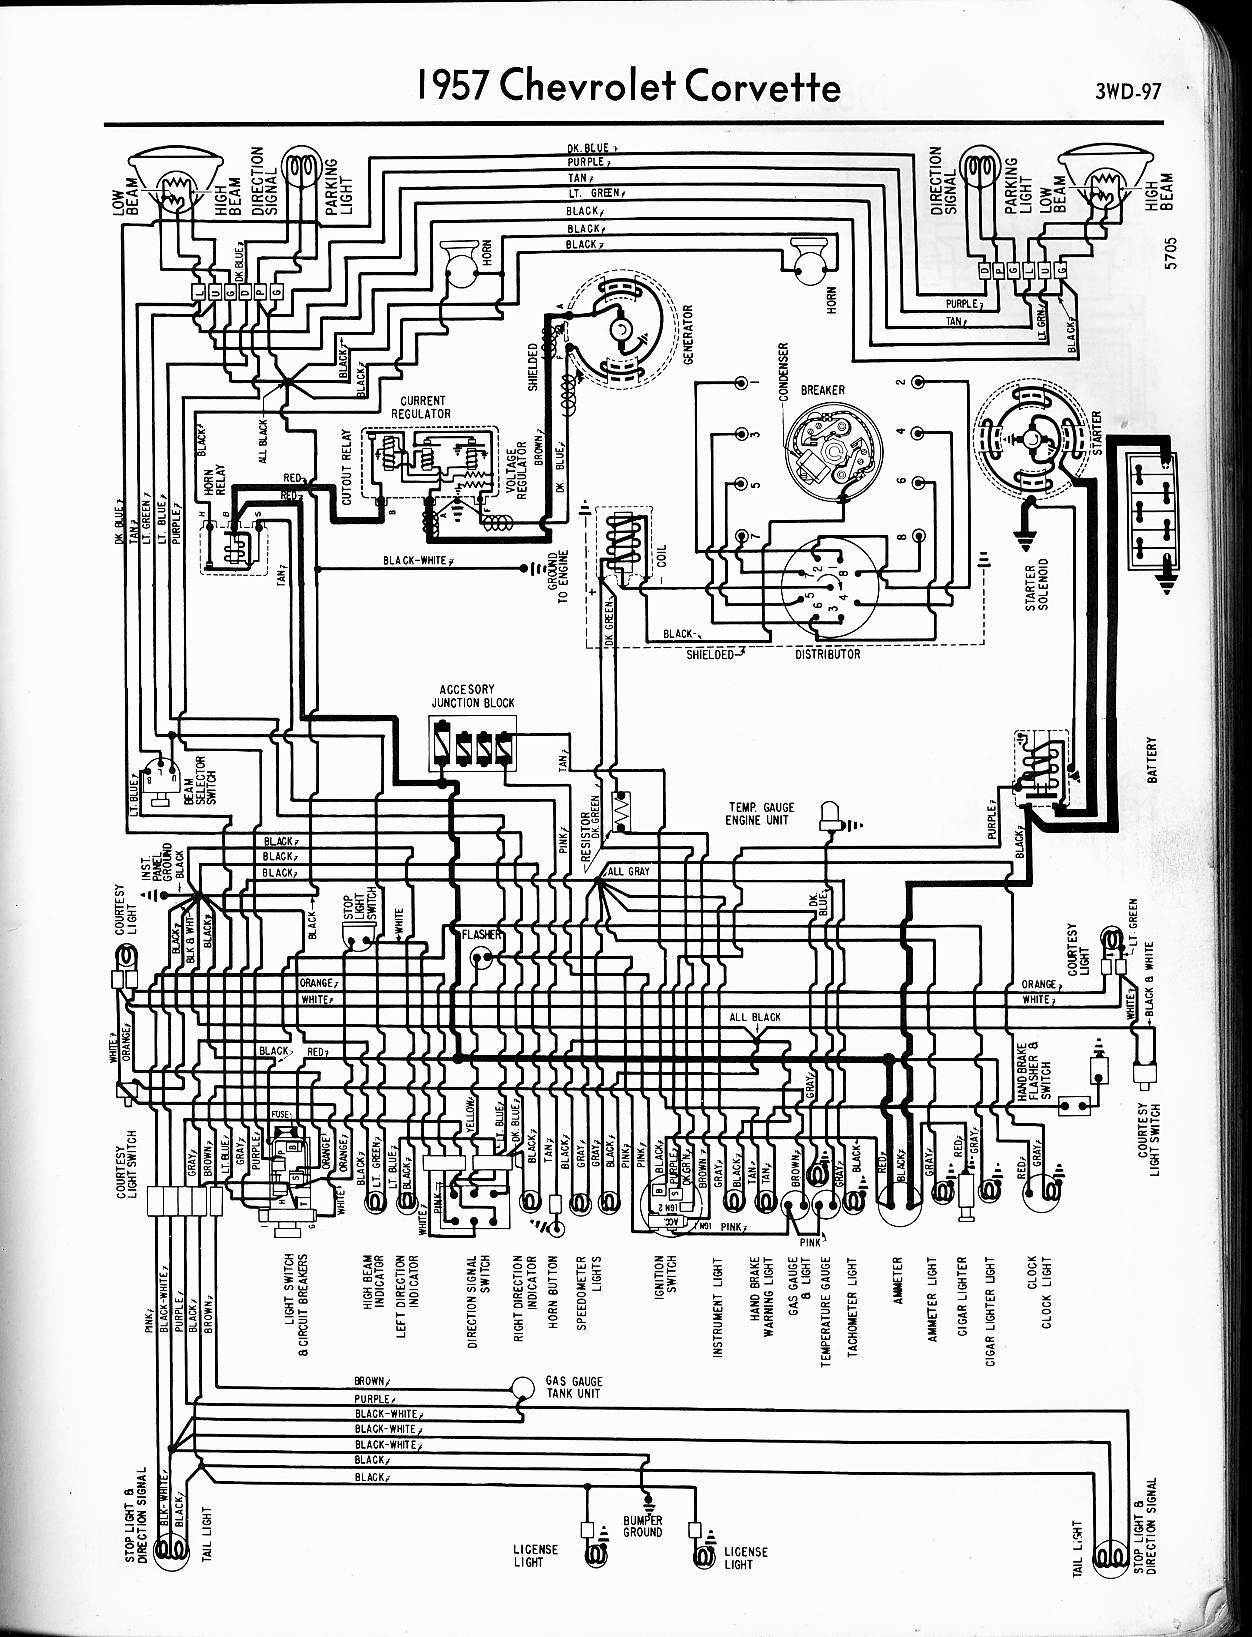 Chevy Wiring Diagrams - 2.obfvooaw.urbanecologist.info • on 1957 vw wiring diagram, 1970 vw beetle wiring diagram, 1960 vw steering, 1960 vw headlights, 1960 vw fuel tank, 1960 vw engine, 67 vw wiring diagram, 1979 vw beetle wiring diagram, 1968 vw beetle wiring diagram, 1960 vw motor, 1973 vw wiring diagram, 1972 vw wiring diagram, 70 vw wiring diagram, 1969 vw wiring diagram,